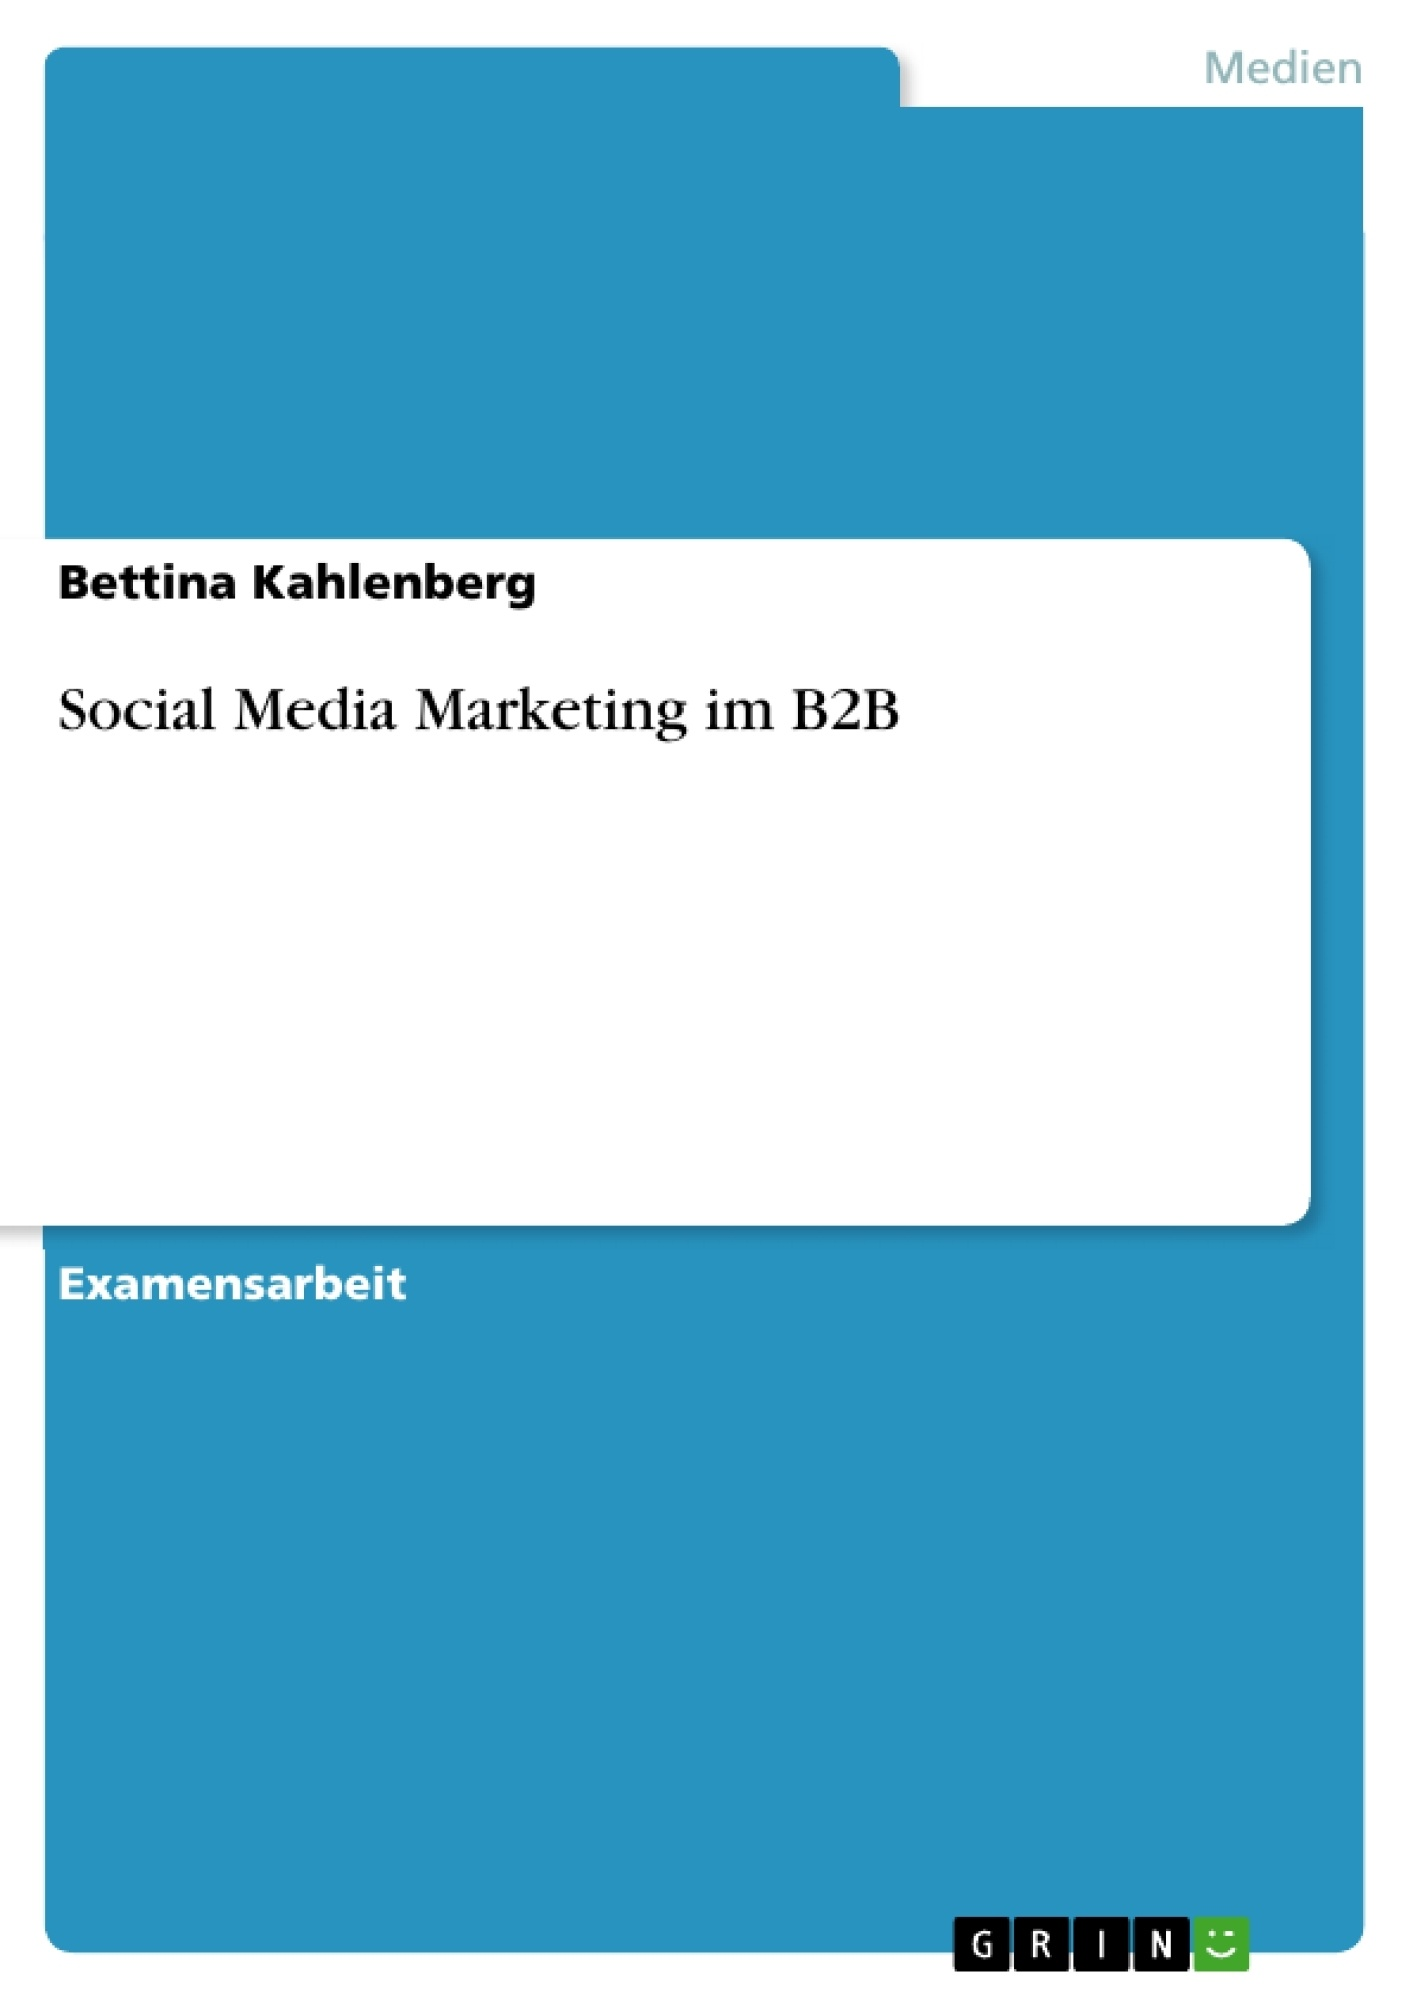 Titel: Social Media Marketing im B2B